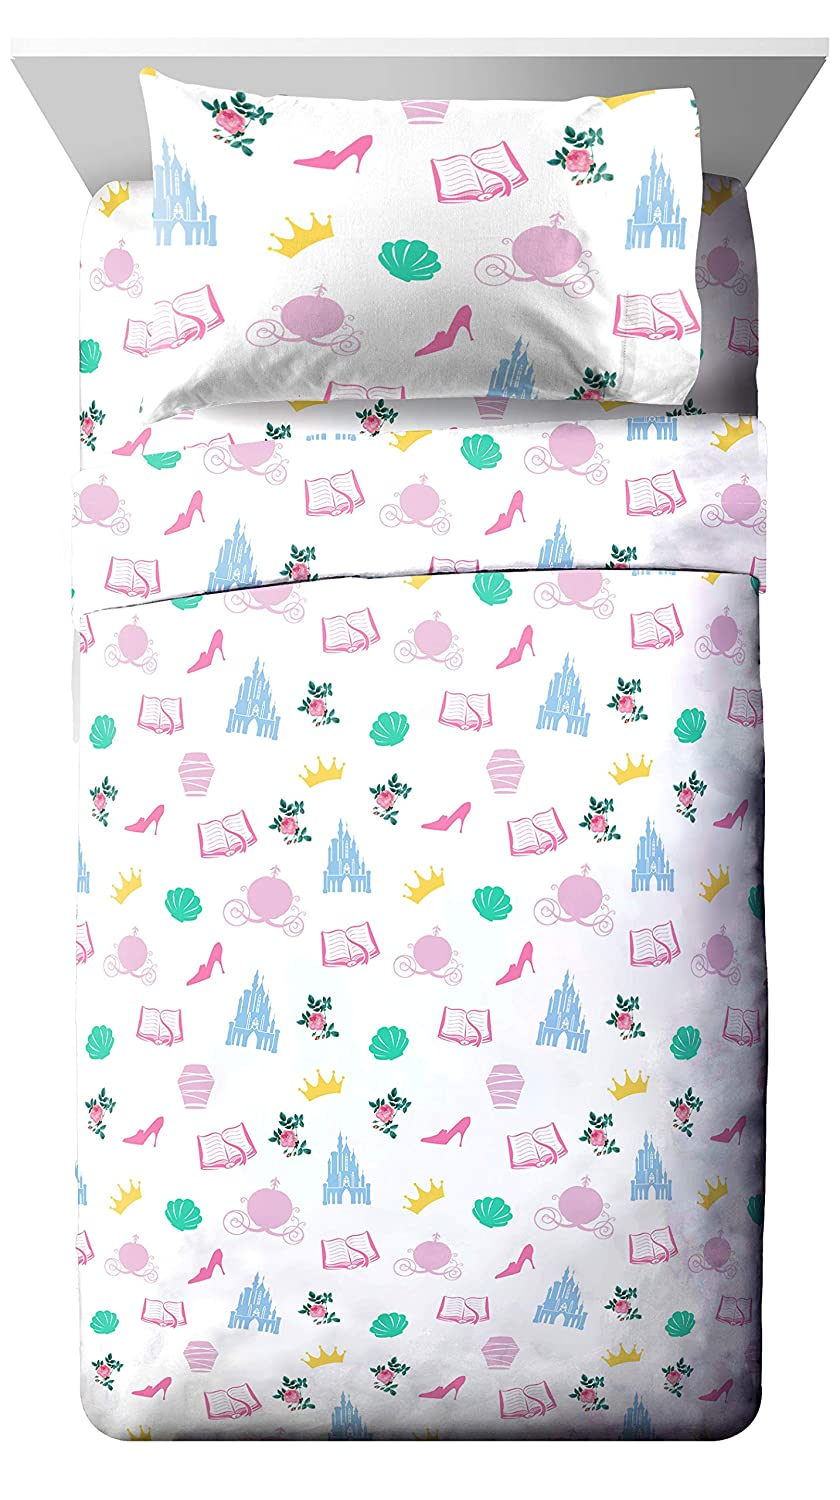 Jay Franco Disney Princess Sassy Twin Sheet Set - Super Soft and Cozy Kid's Bedding Features Belle & Cinderella - Fade Resistant Polyester Microfiber Sheets (Official Disney Product)